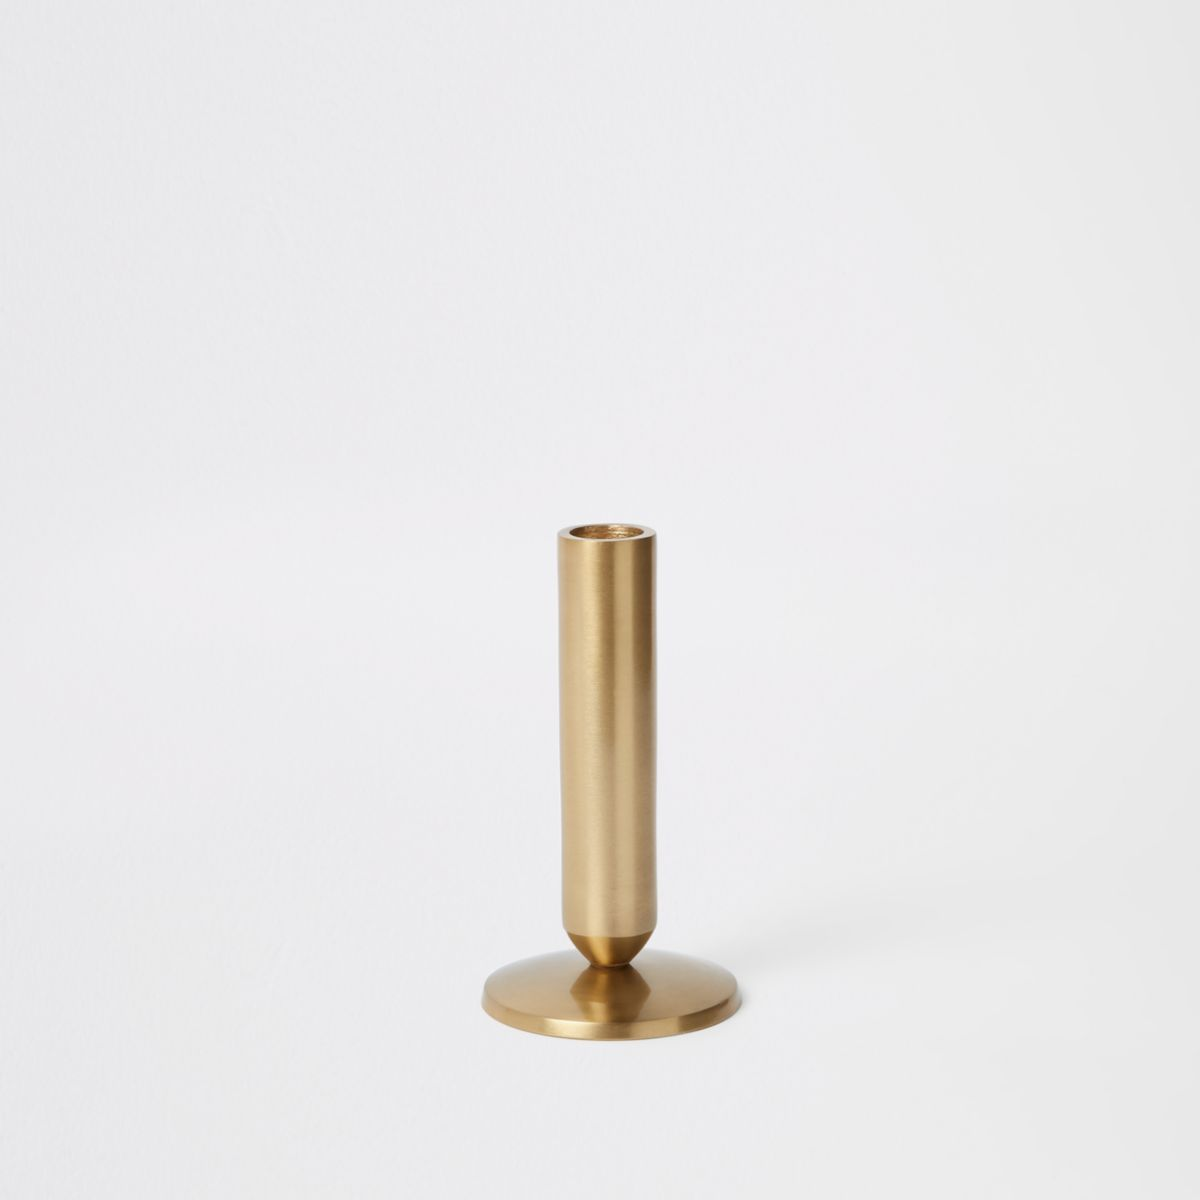 Small gold candle holders